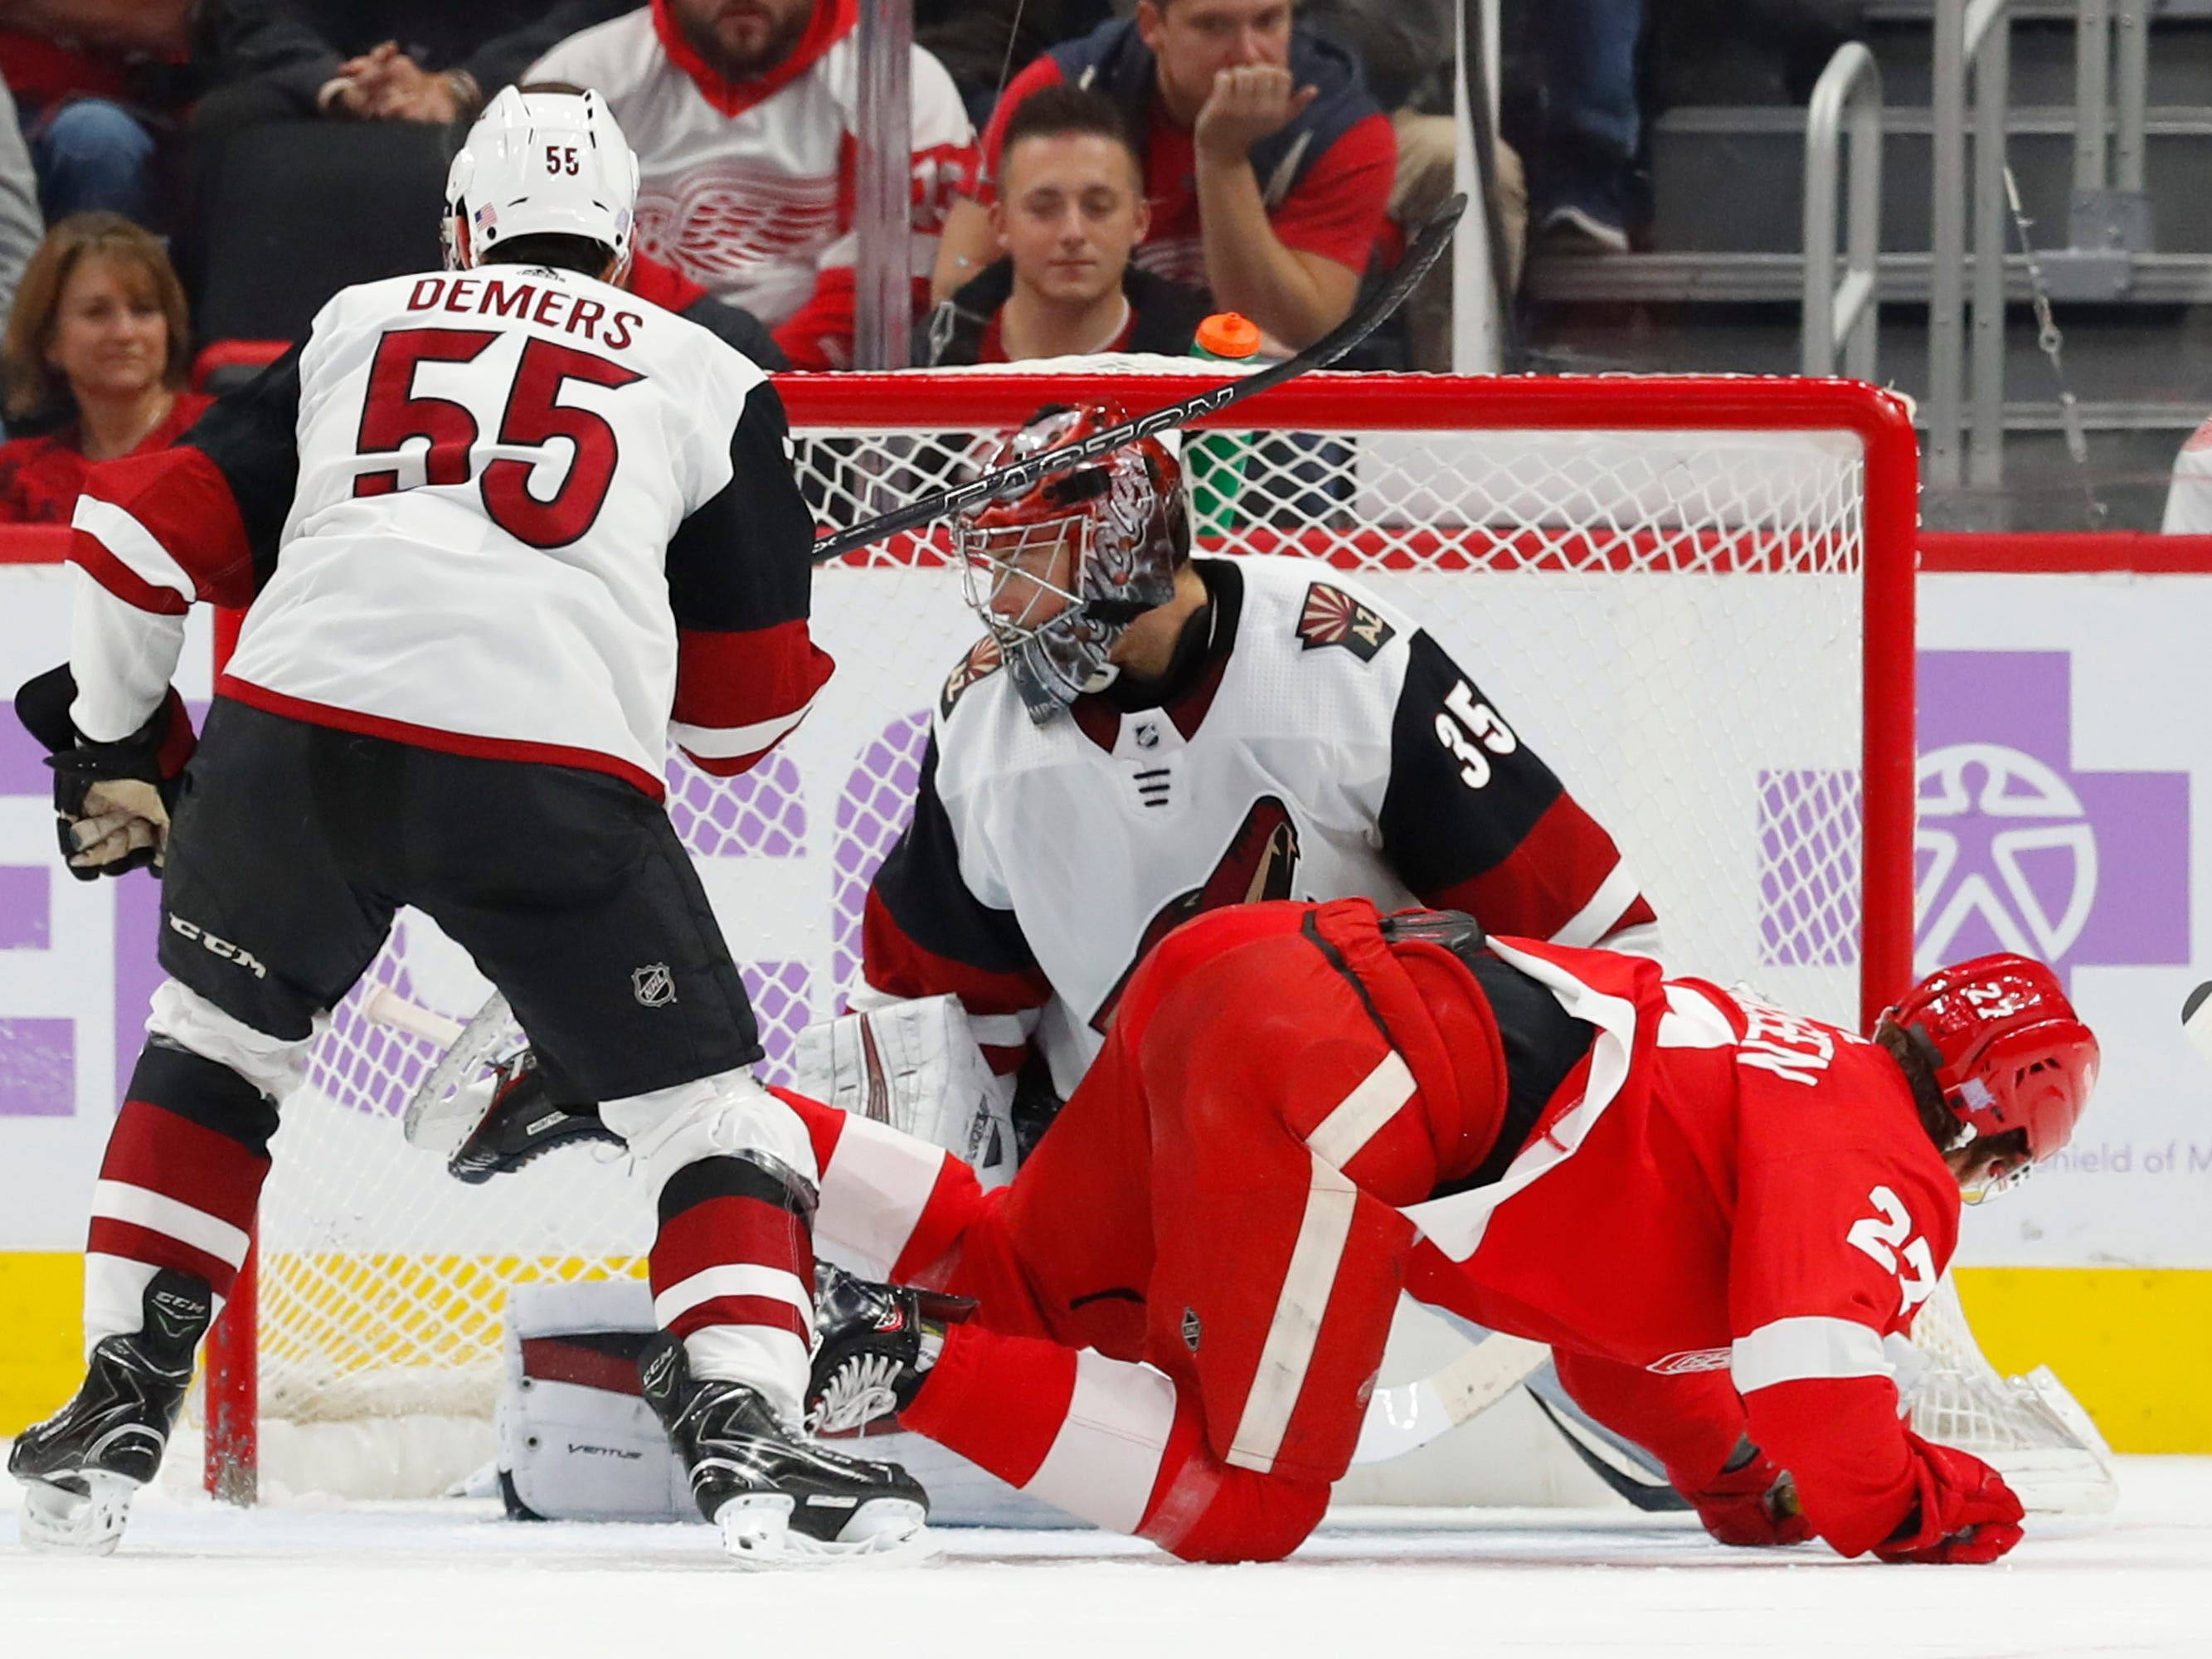 Detroit Red Wings center Michael Rasmussen (27) scores on Arizona Coyotes goaltender Darcy Kuemper (35) in the first period of an NHL hockey game Tuesday, Nov. 13, 2018, in Detroit.